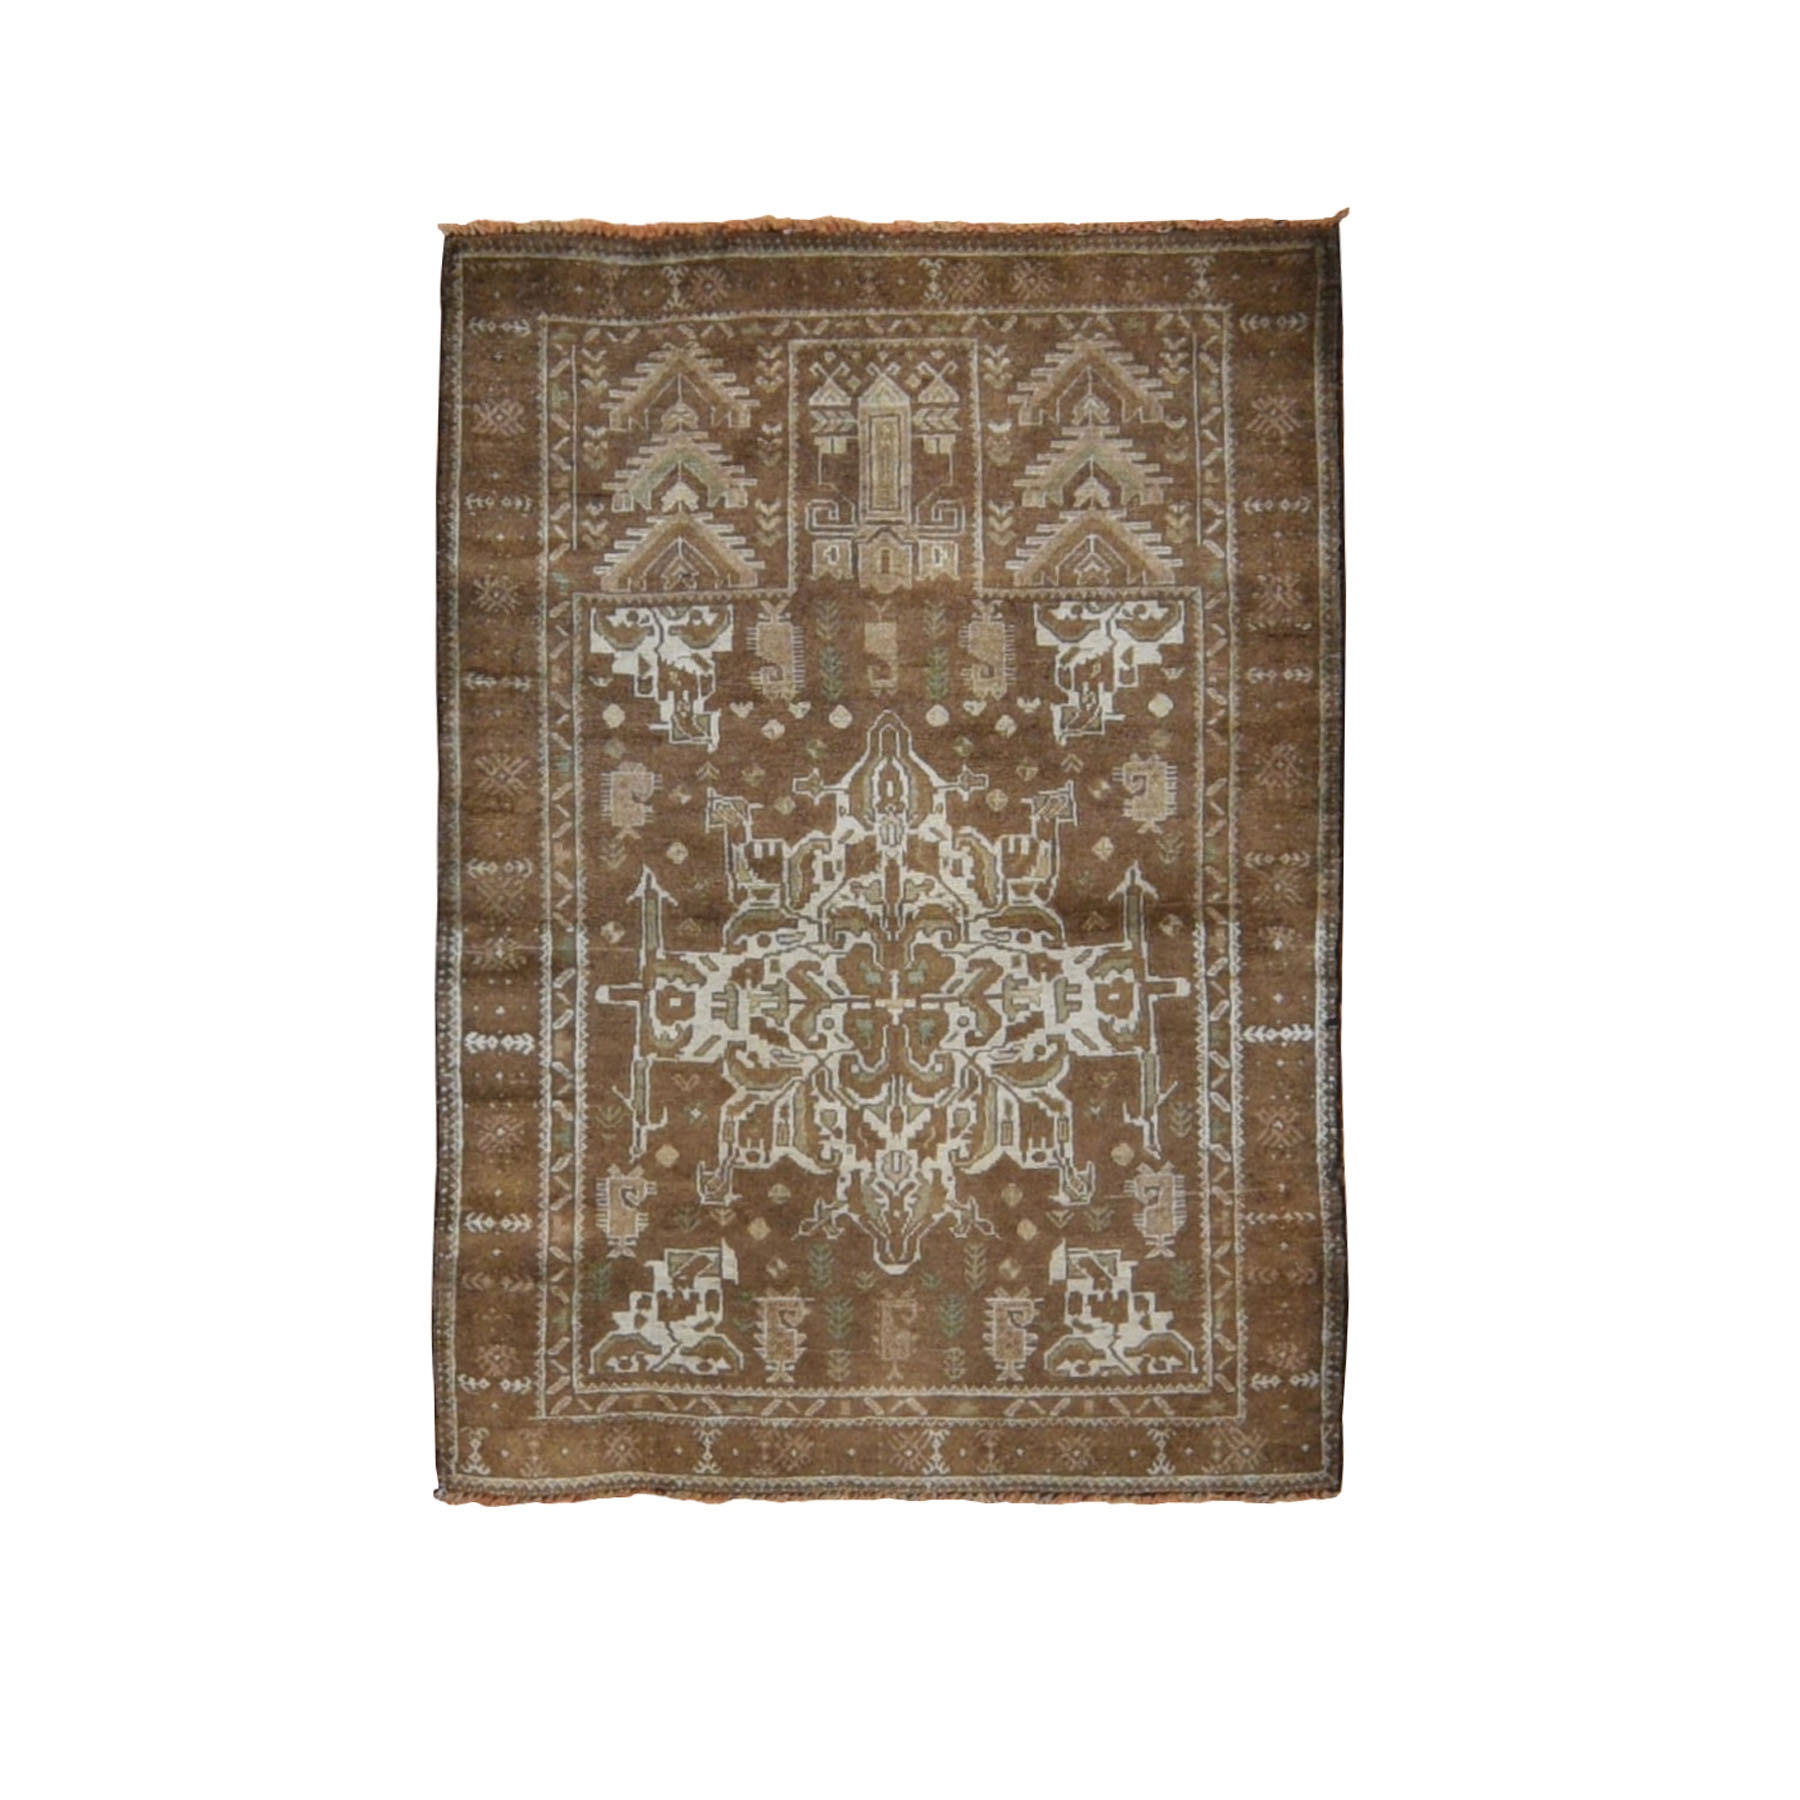 3'x4' Washed Out With Natural Colors Tribal Hand Woven Oriental Rug